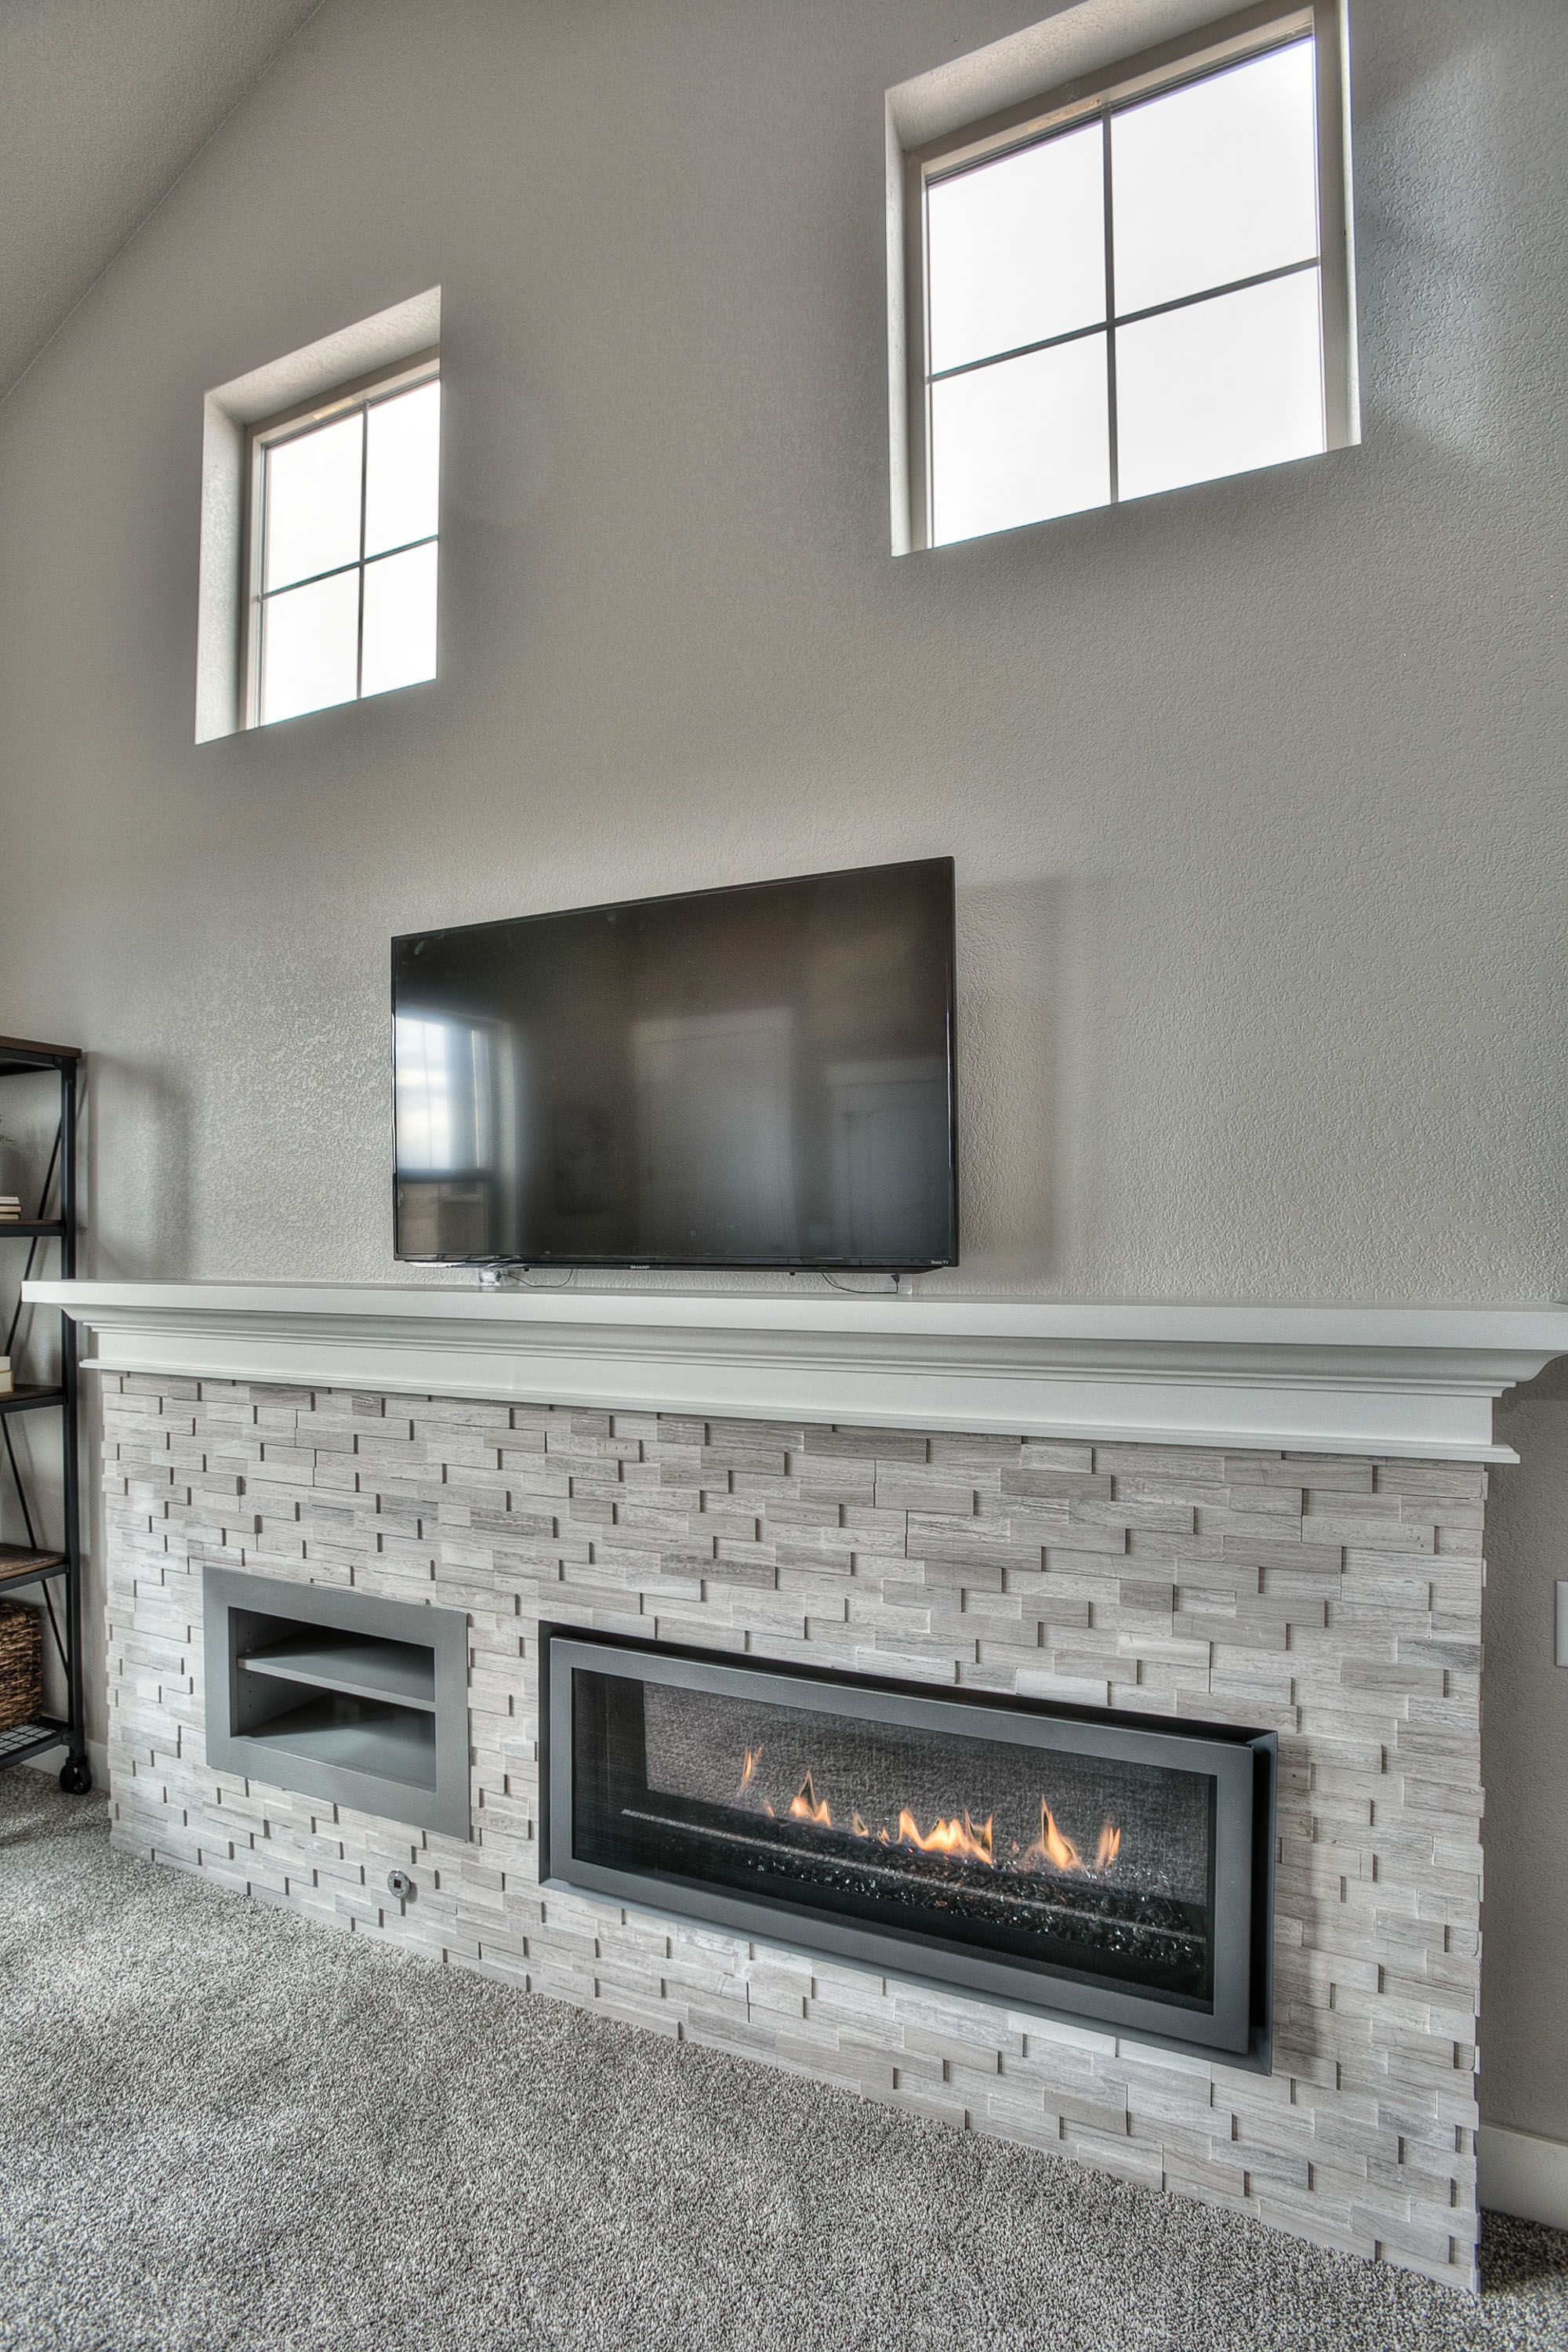 Linear Fireplace With Ledgerstone Linear Fireplace Fireplace Surrounds Fireplace Mantels For Sale